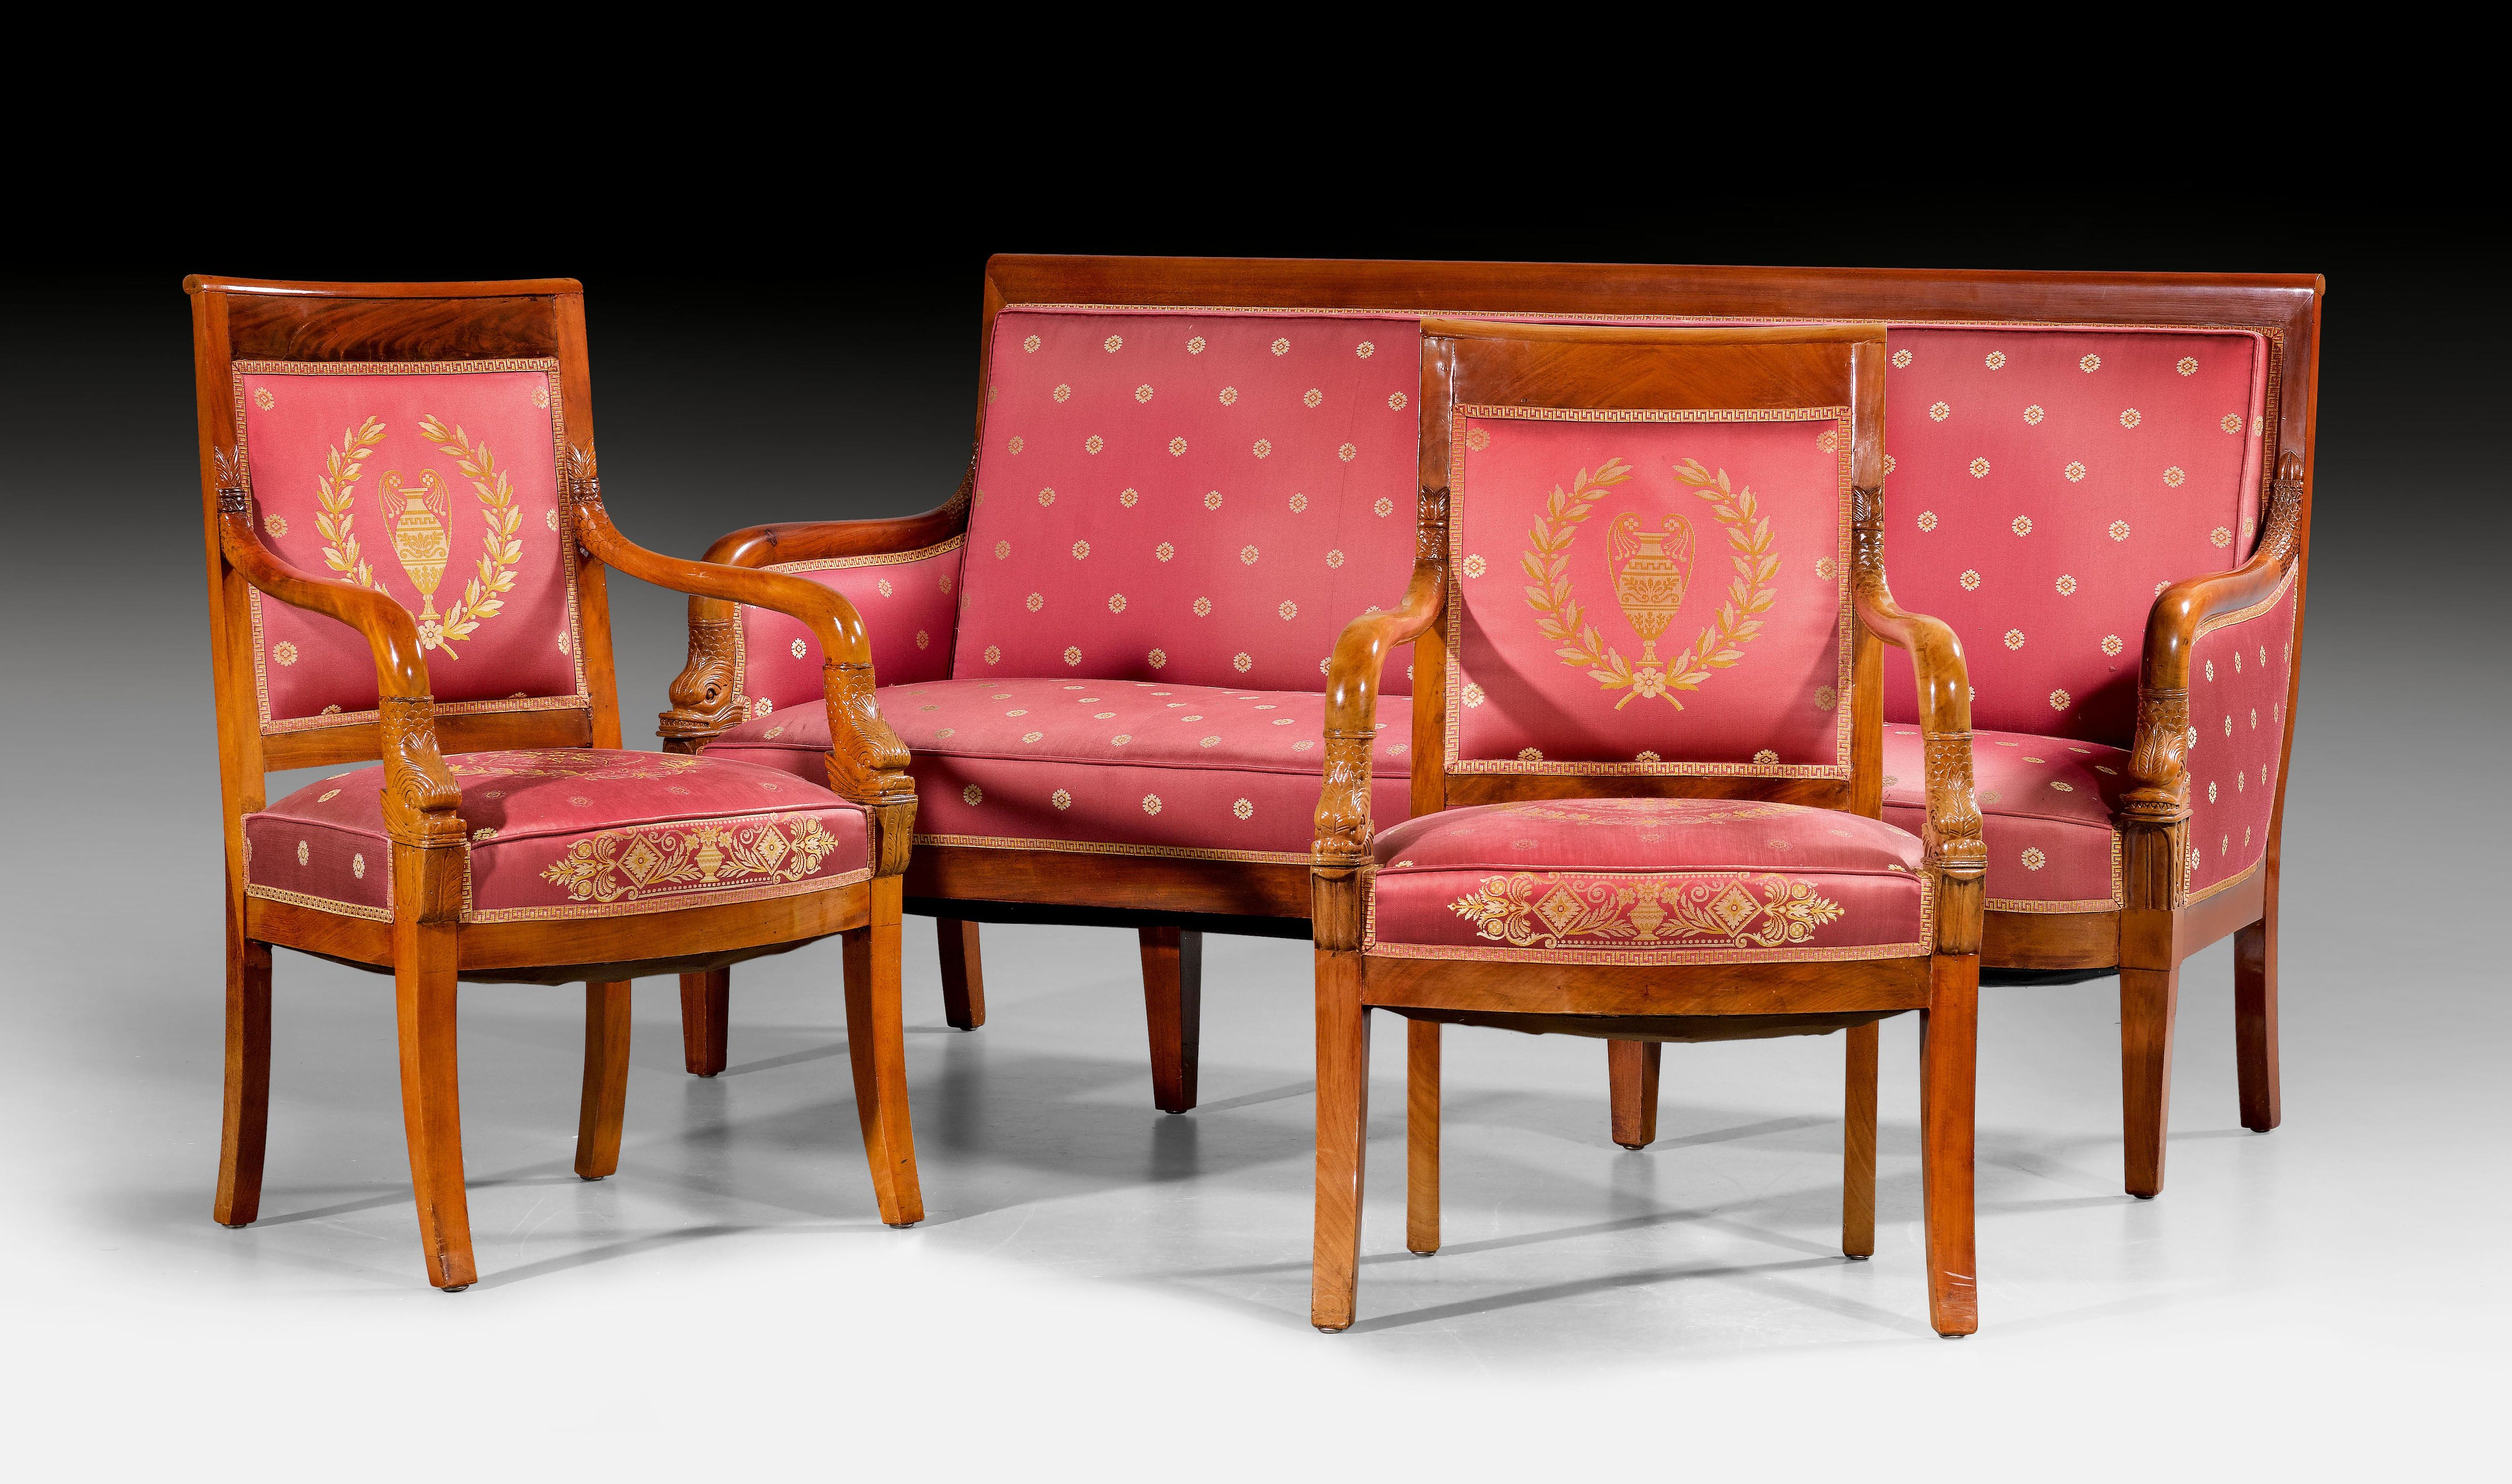 C1810 20 Small Suite Of Furniture Aux Tetes De Dauphins Empire In The Style Of P A Bellange Pierre Antoine Bellange 1758 P Furniture Empire Style Decor